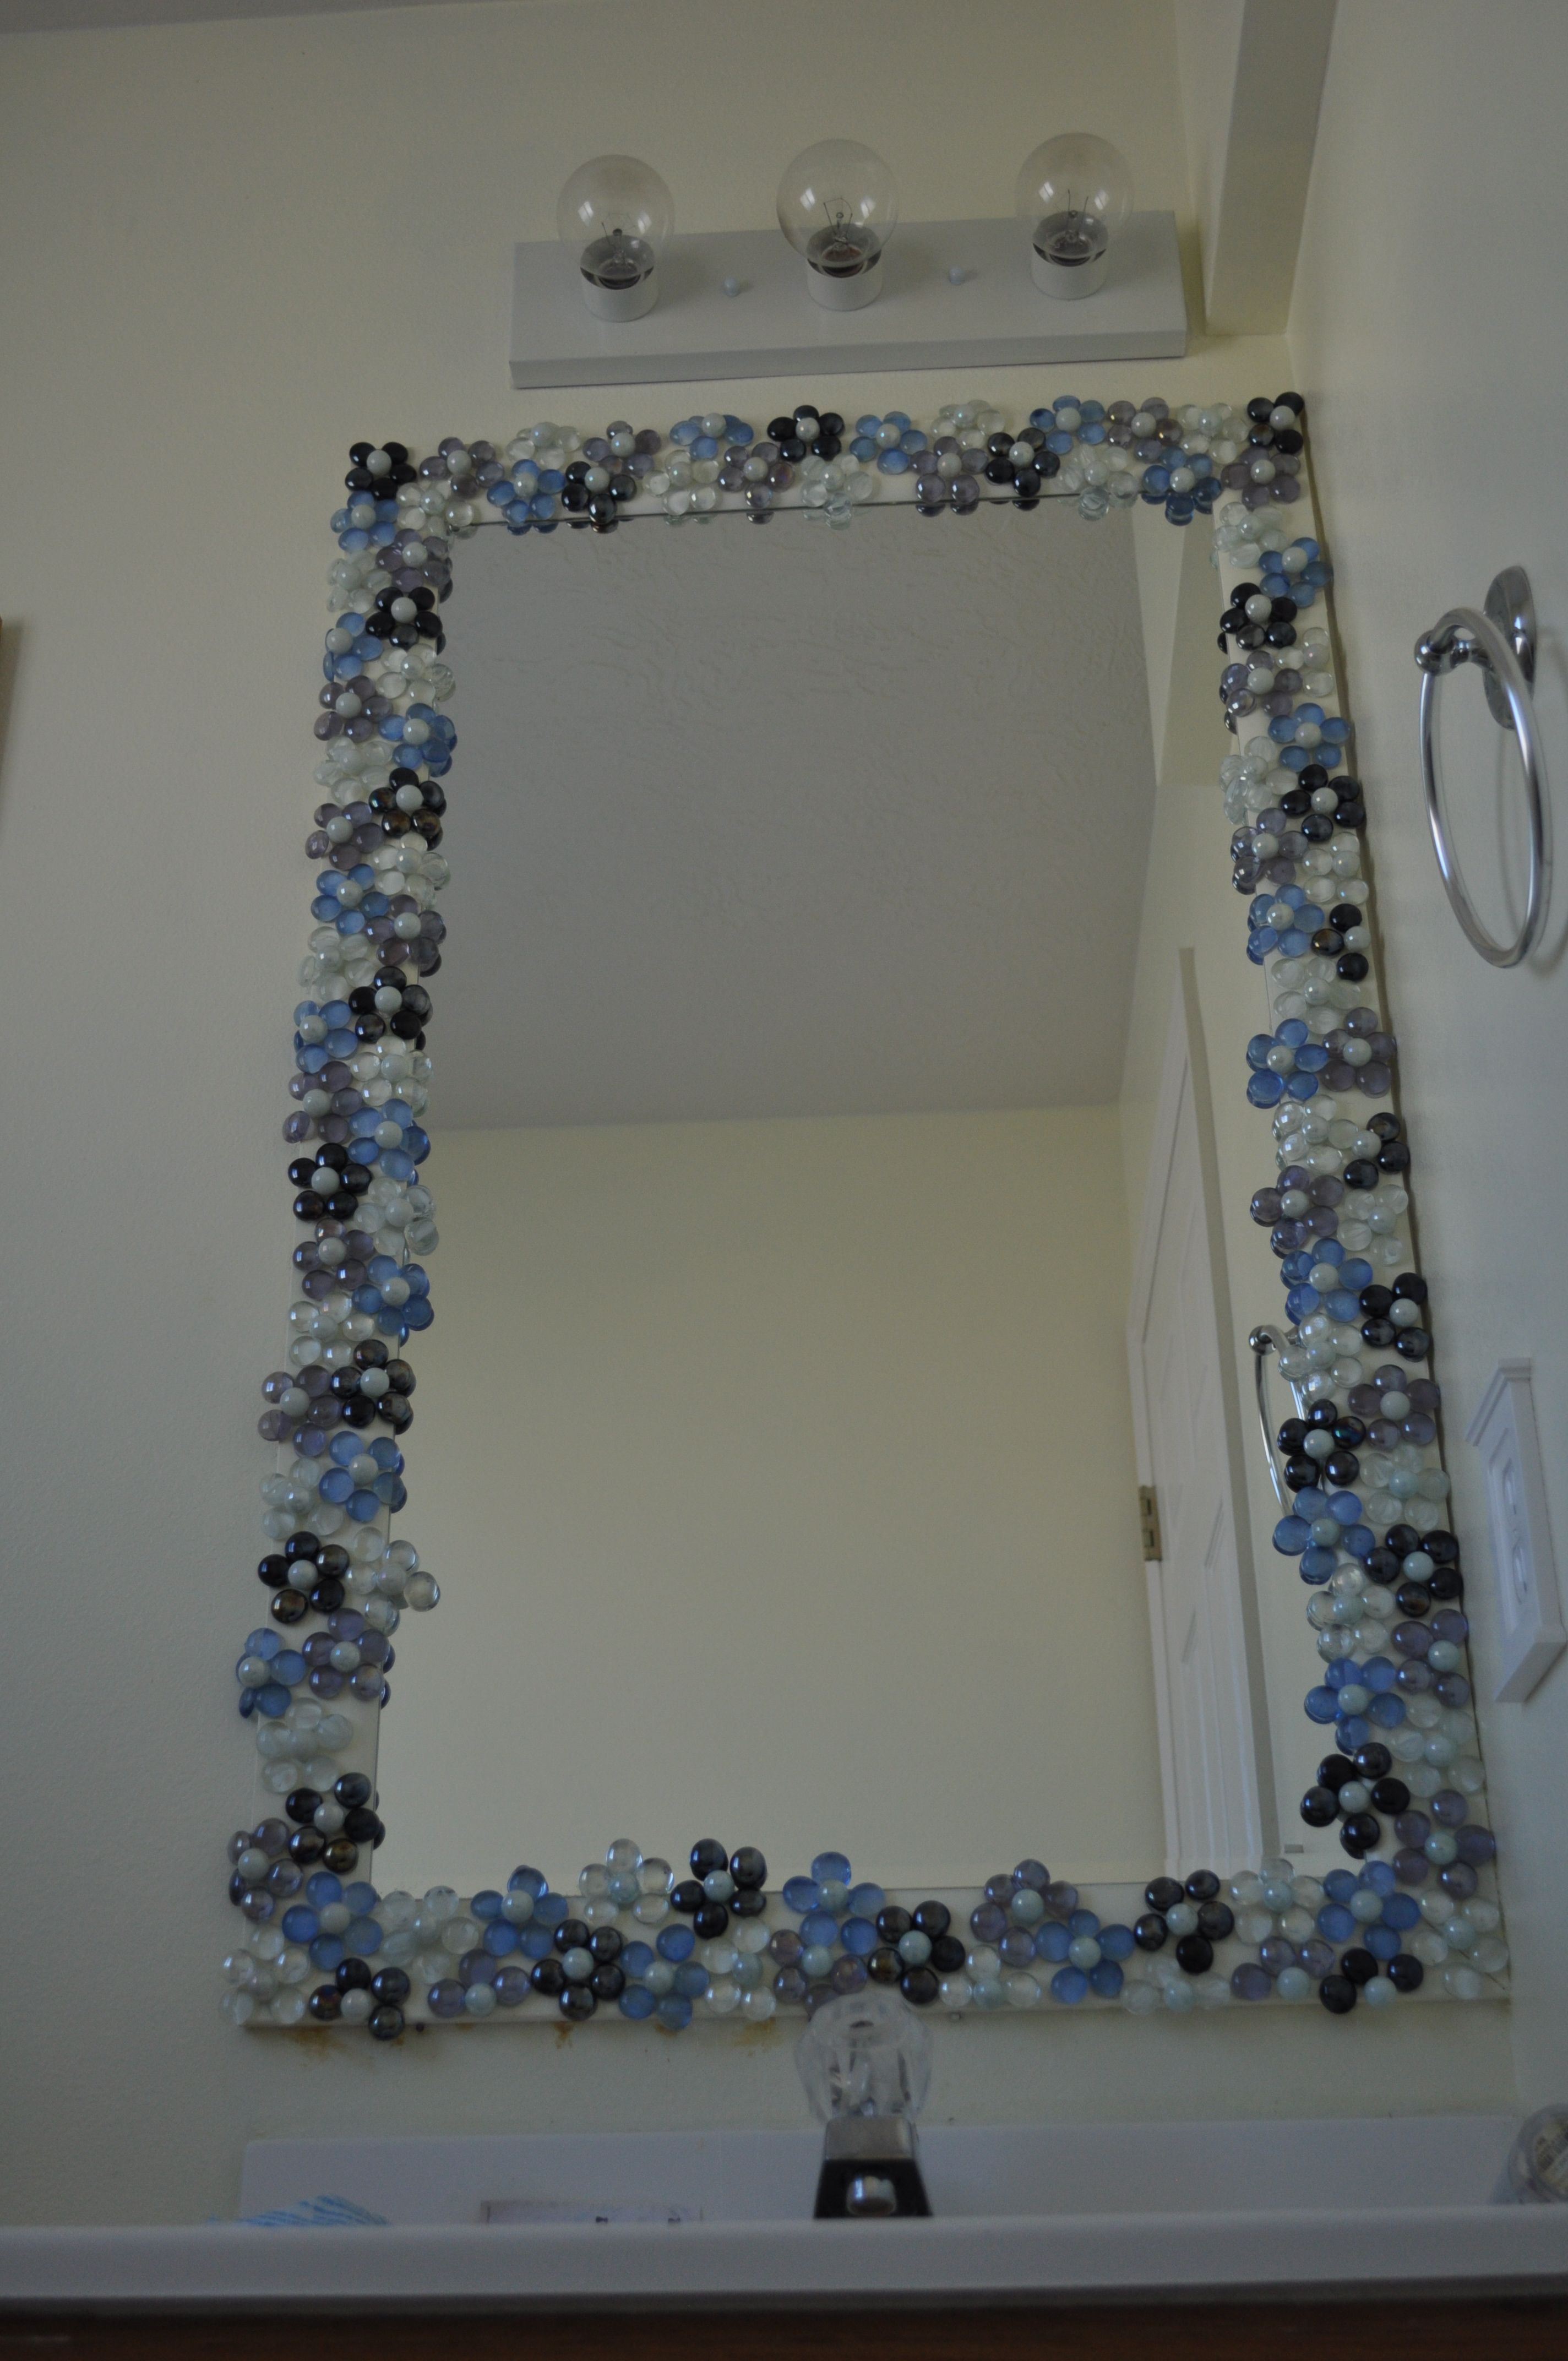 Decorating Bathroom Mirrors New Glass Gems with Pearl Marble Centers to Dress Up A Bathroom